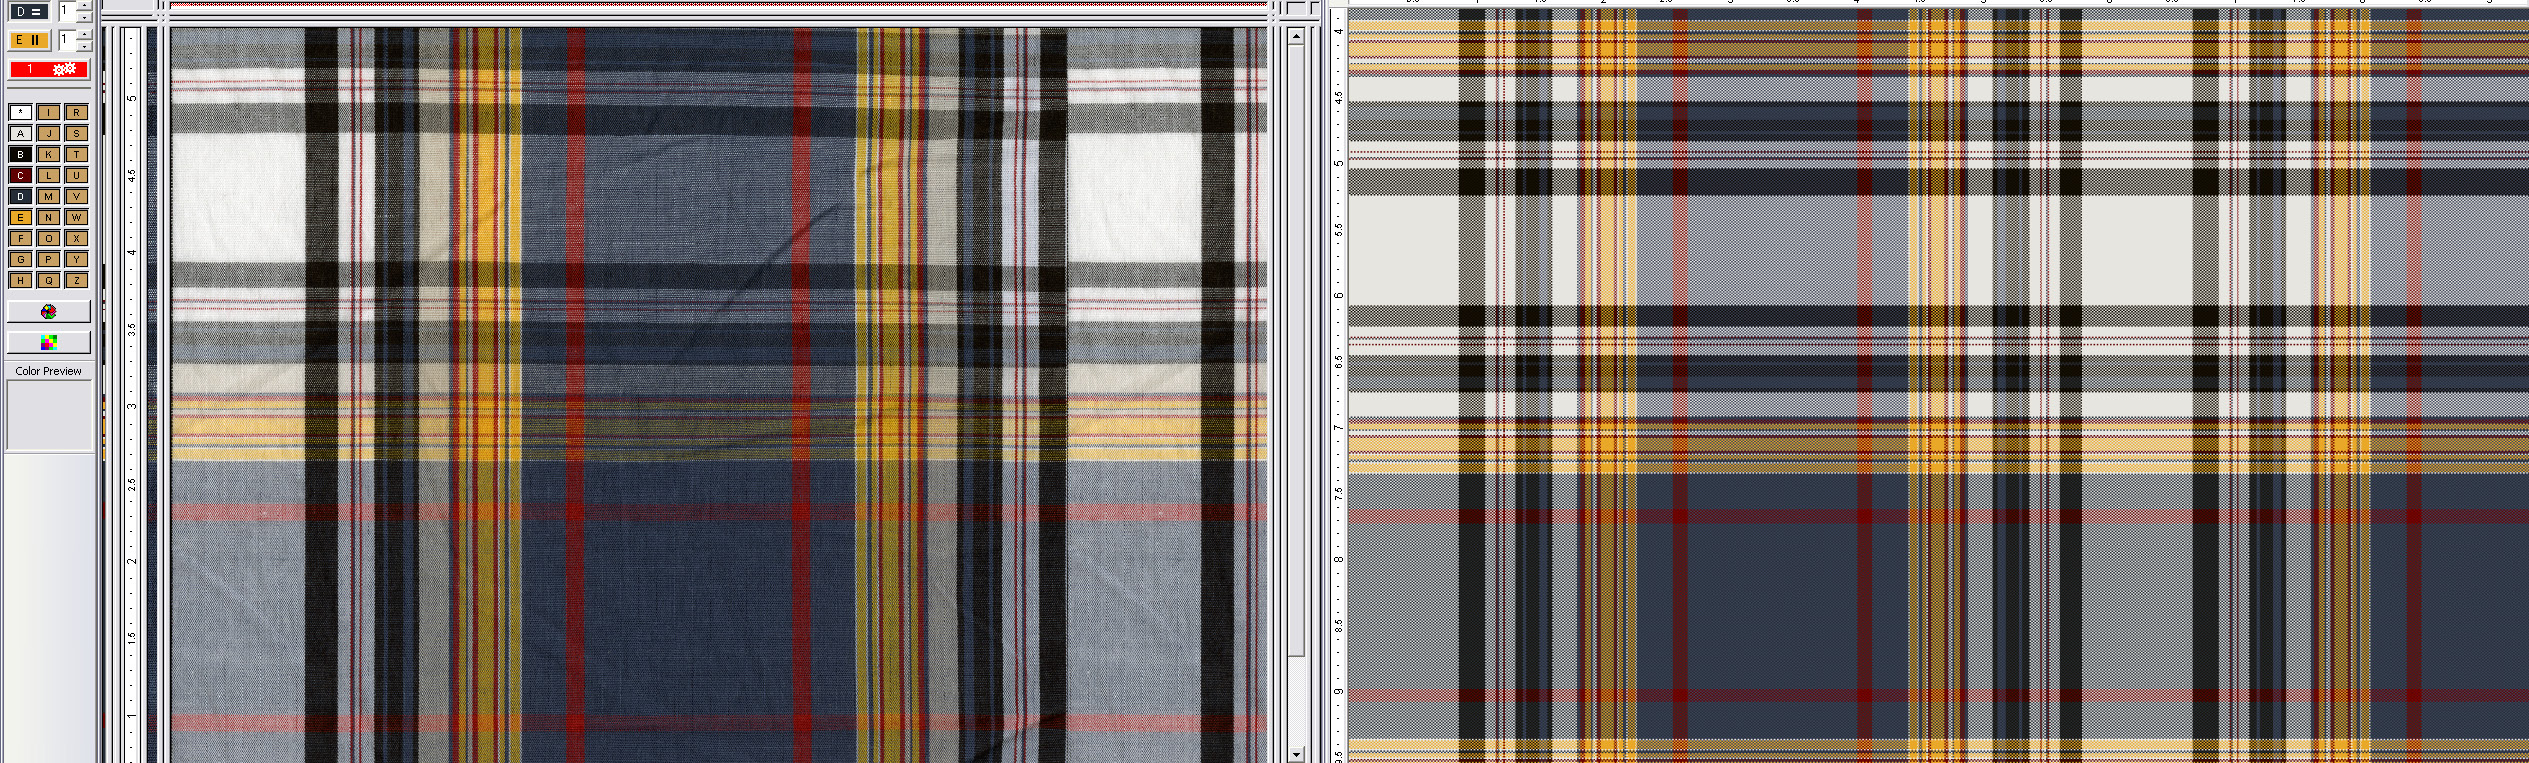 screen shot of two plaid patterns side by side showing how software analyzes fabric scans to create quick reproductions